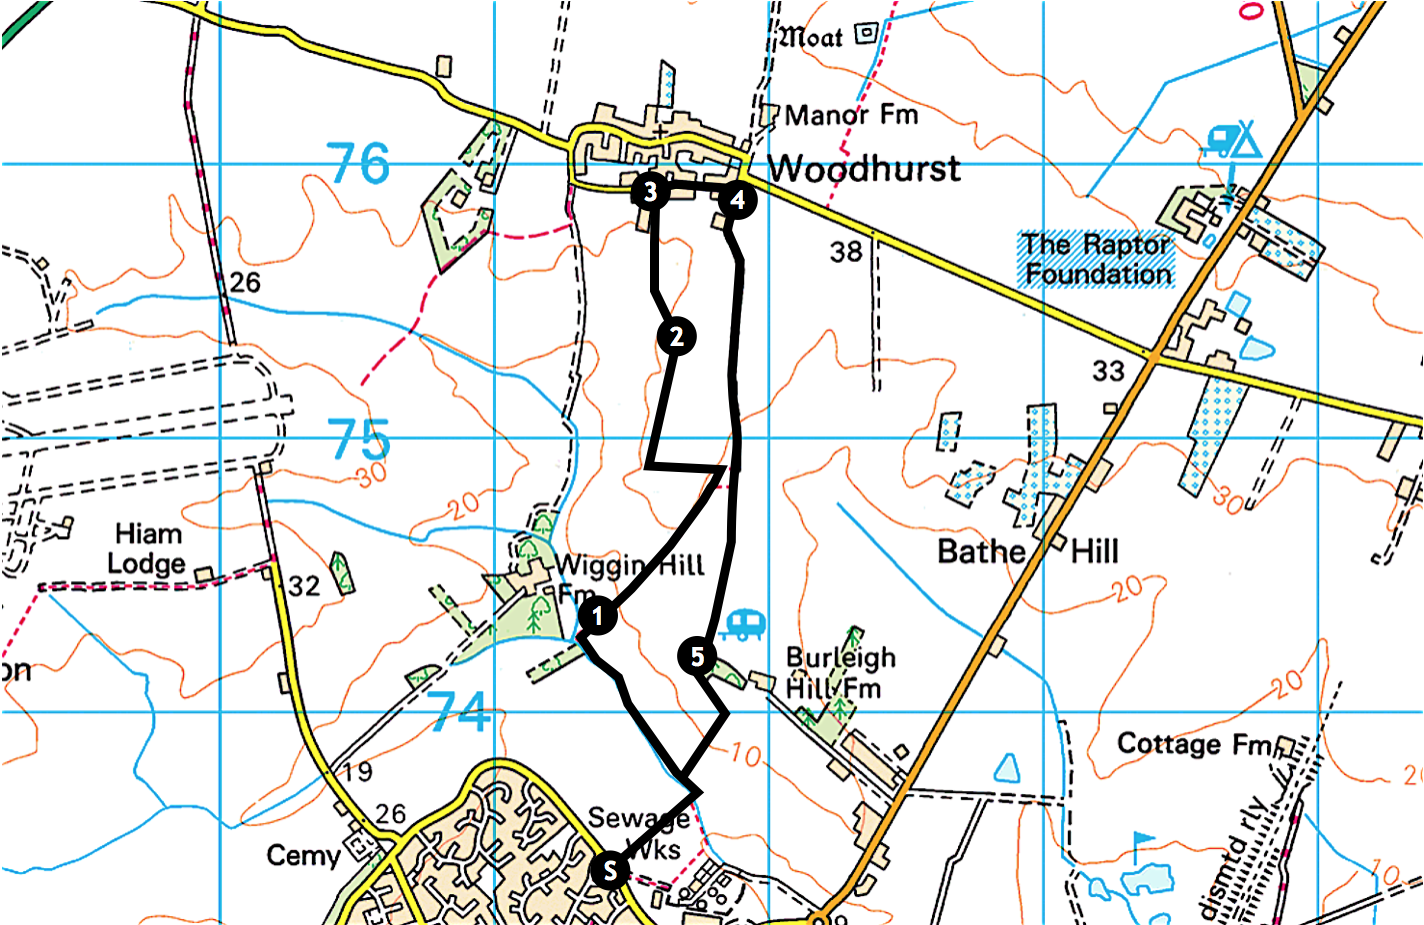 St Ives to Woodhurst map